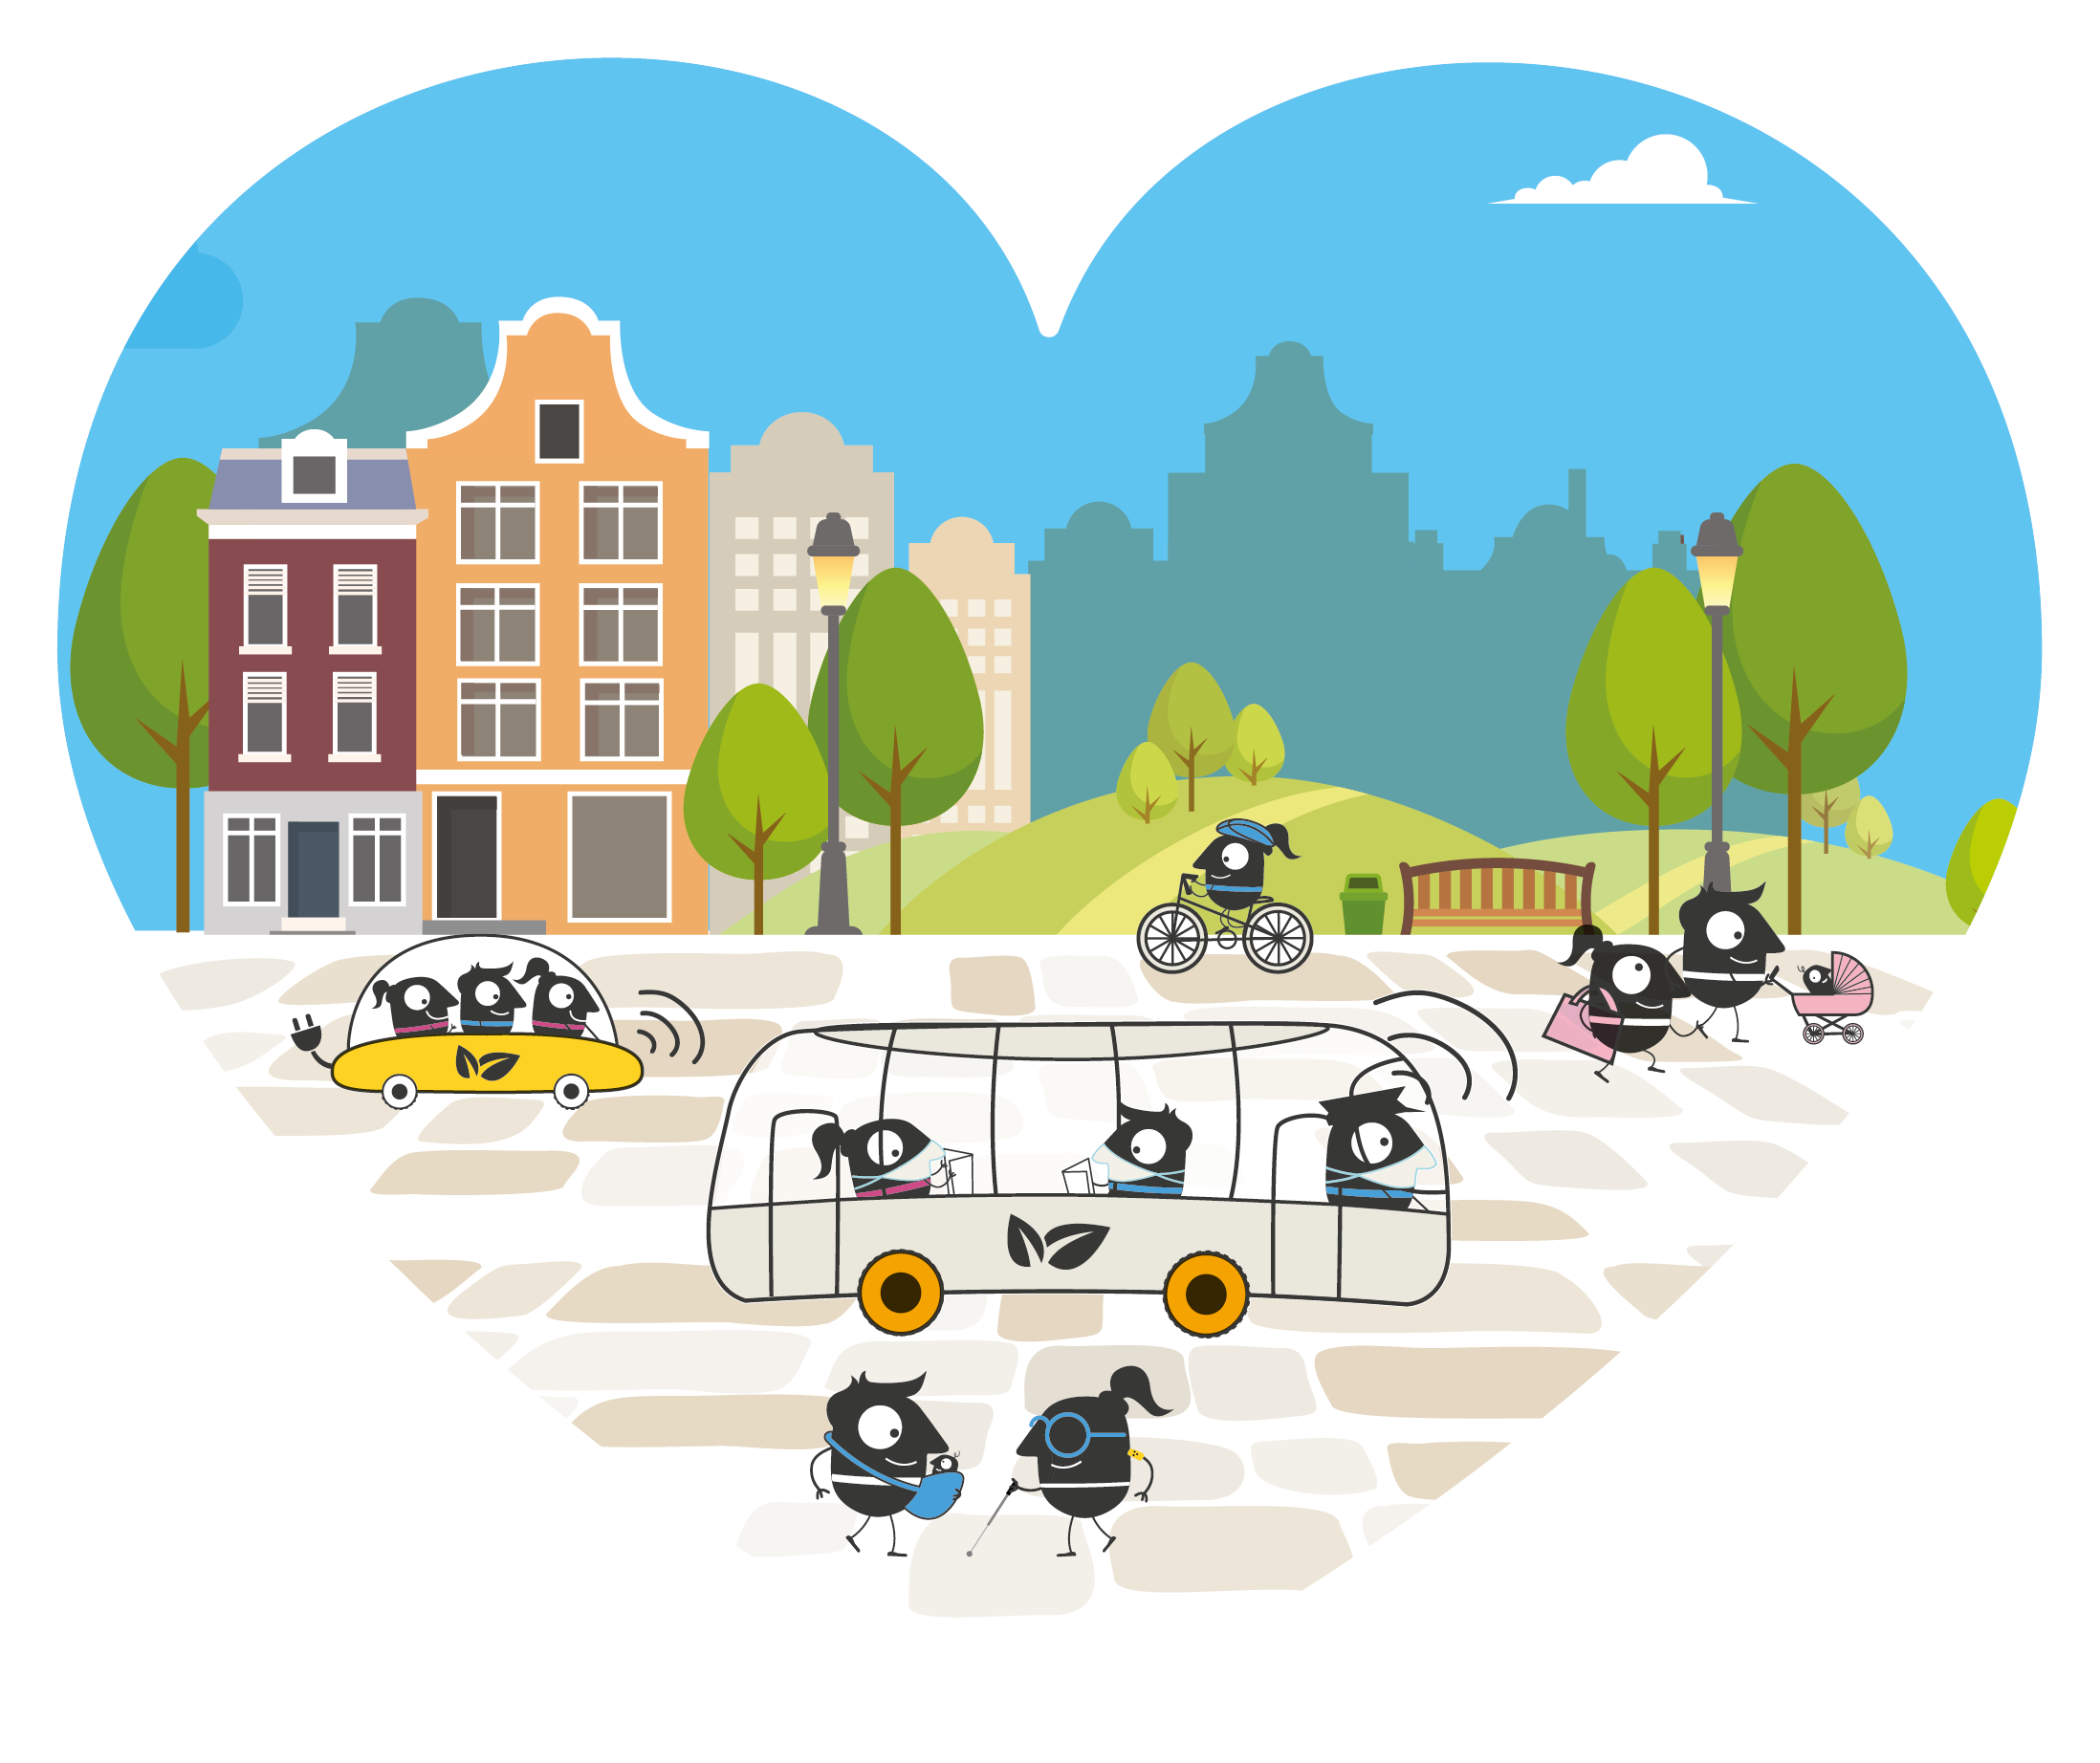 2021 Theme - Safe and Healthy with Sustainable Mobility